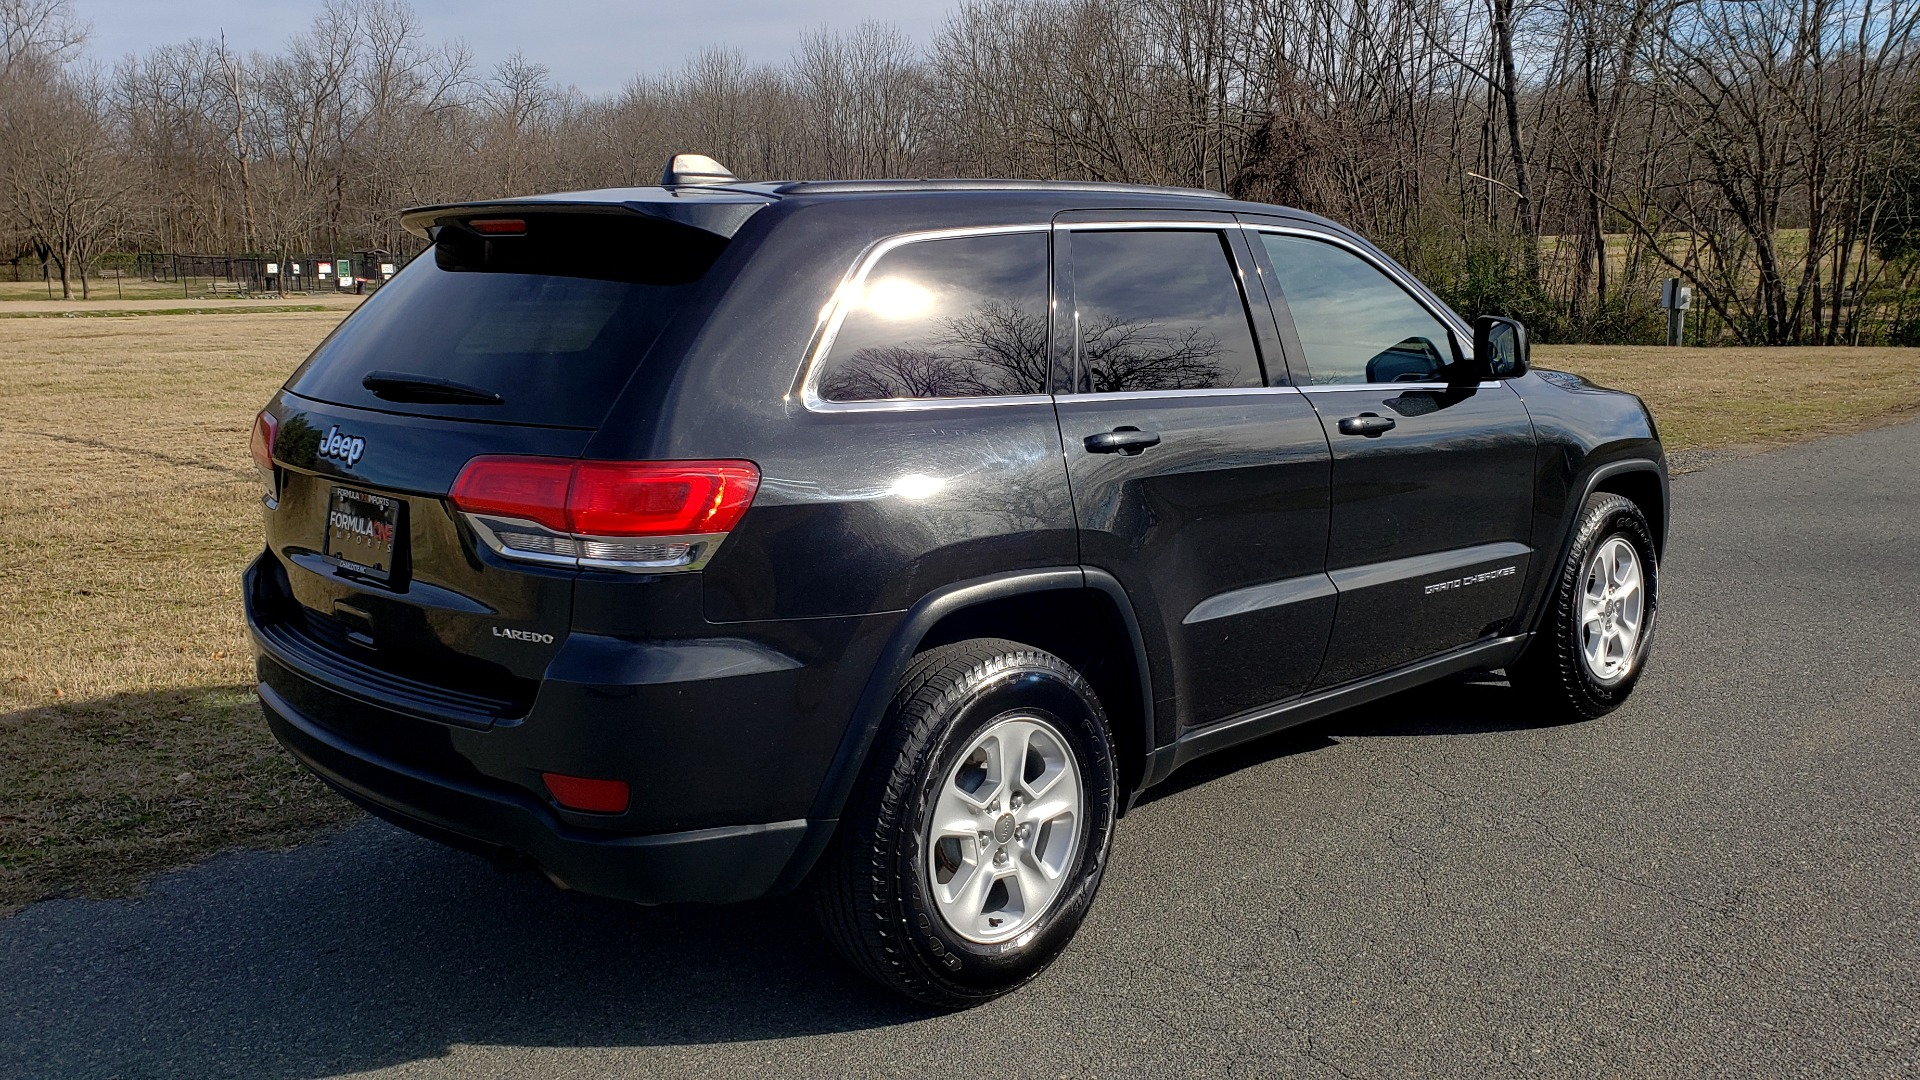 Used 2015 Jeep GRAND CHEROKEE LAREDO / 4X2 / 3.6L V6 / AUTO / 17IN WHEELS for sale Sold at Formula Imports in Charlotte NC 28227 6